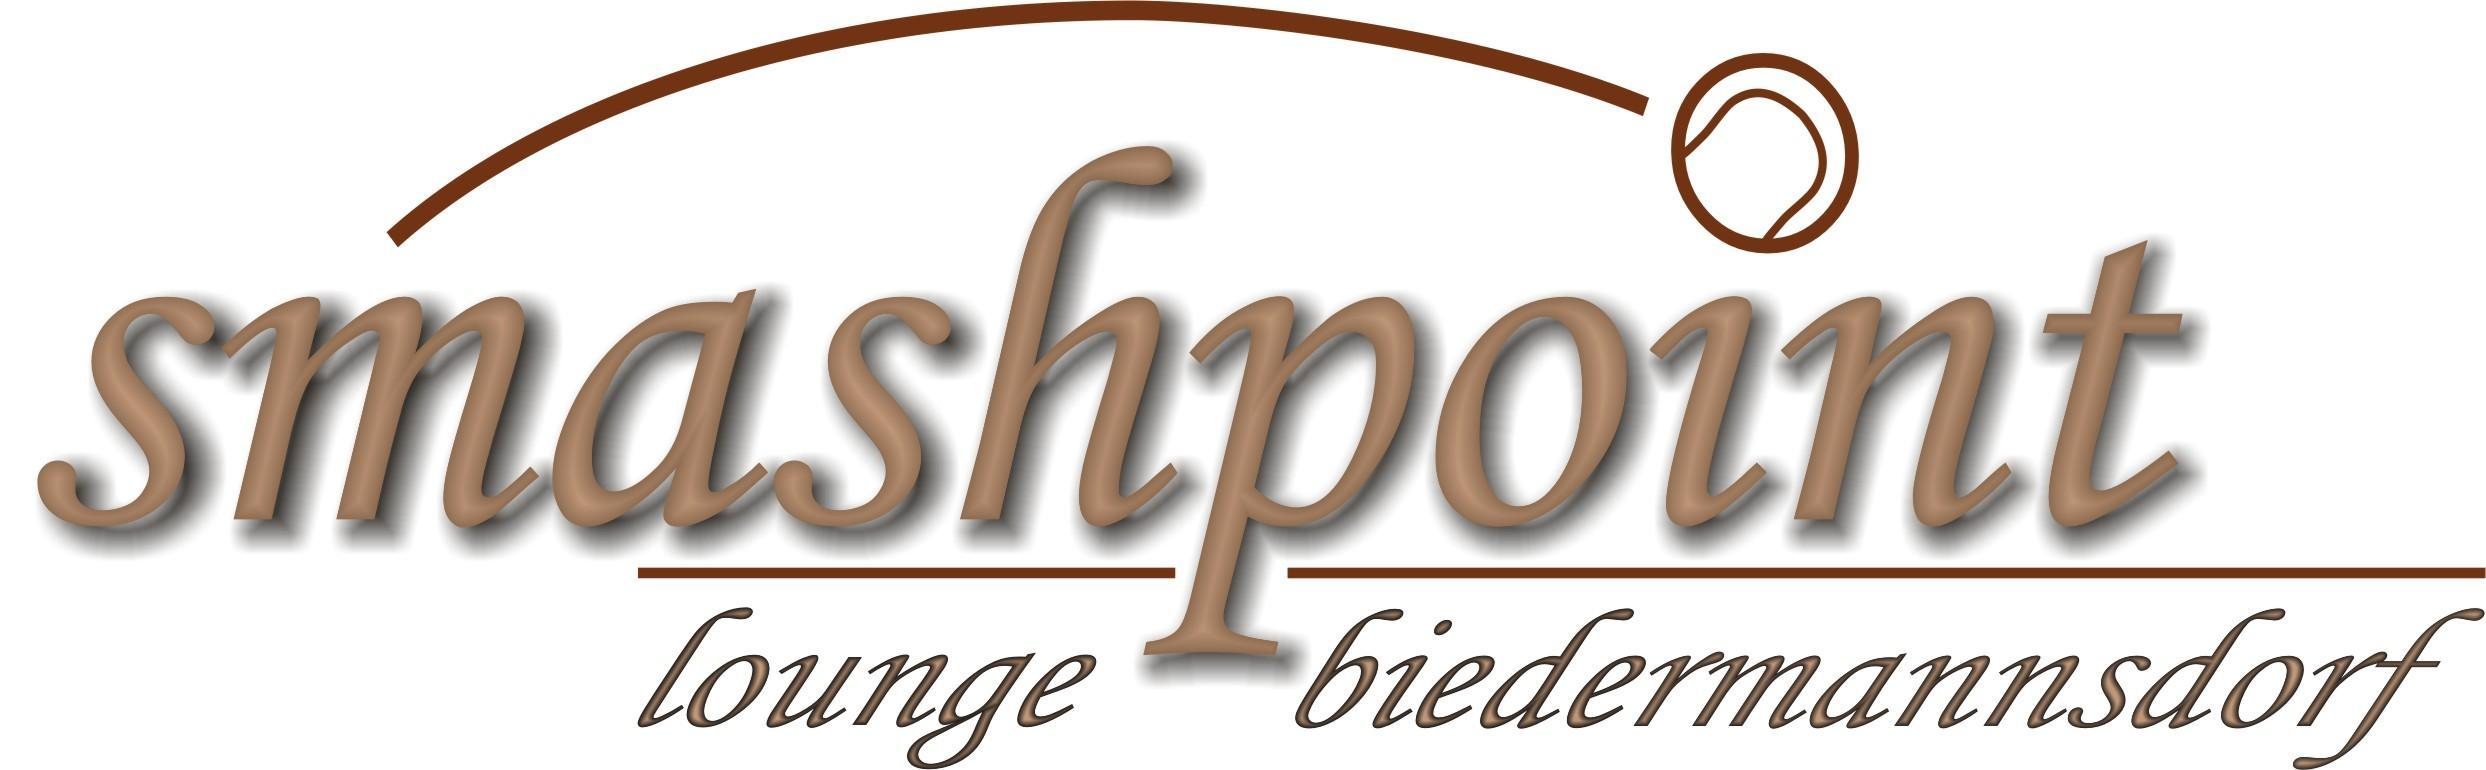 smashpoint_lounge_biedermannsdorf